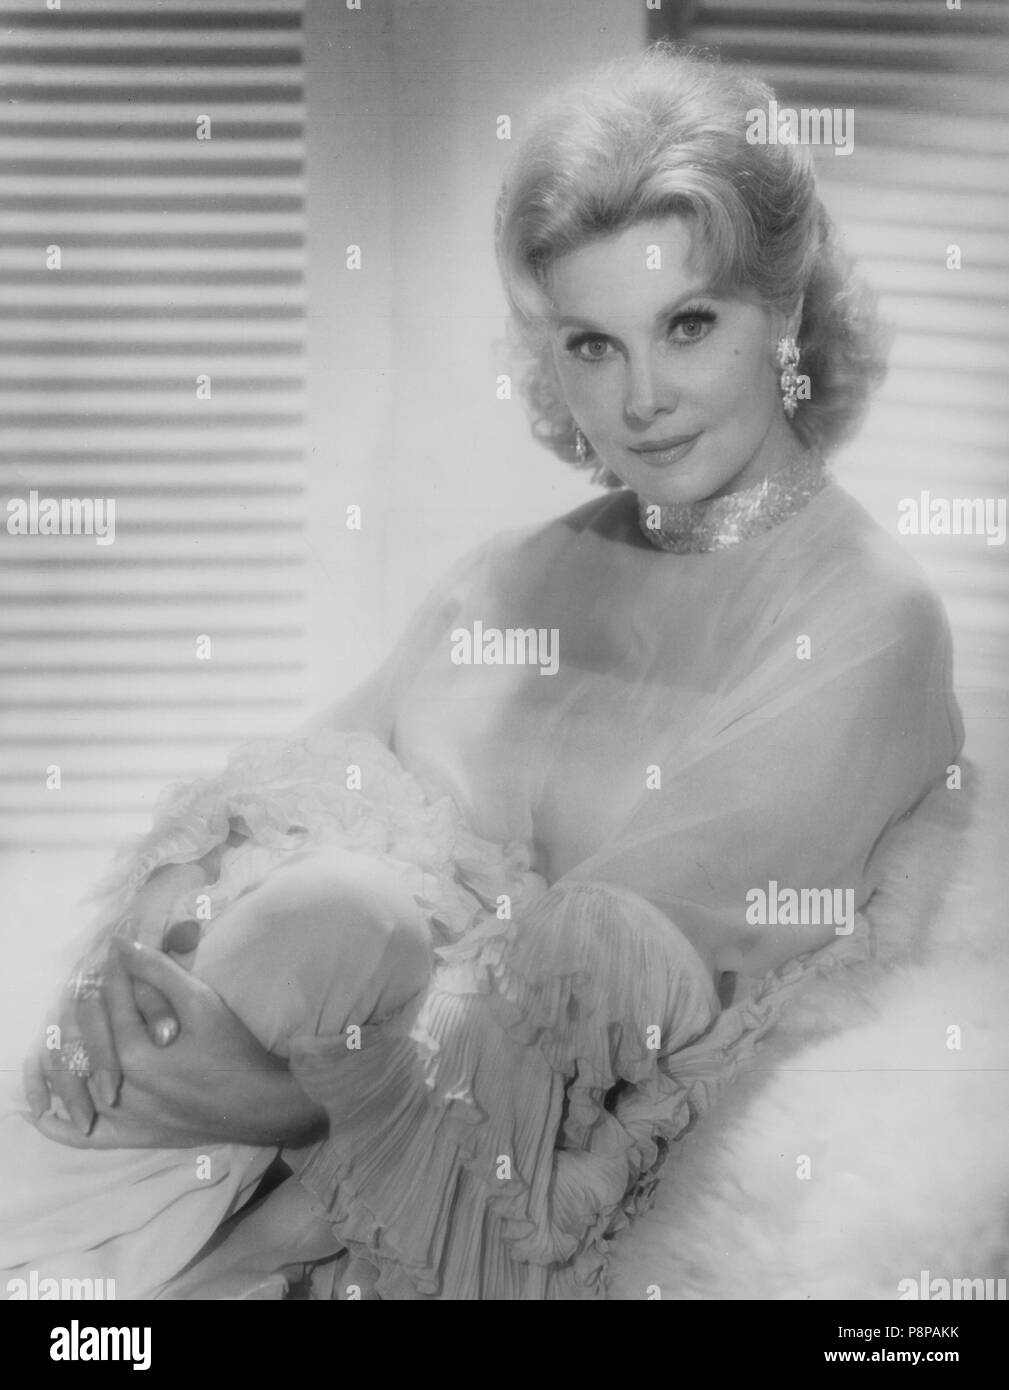 Rhonda Fleming, 1960 Photo Stock